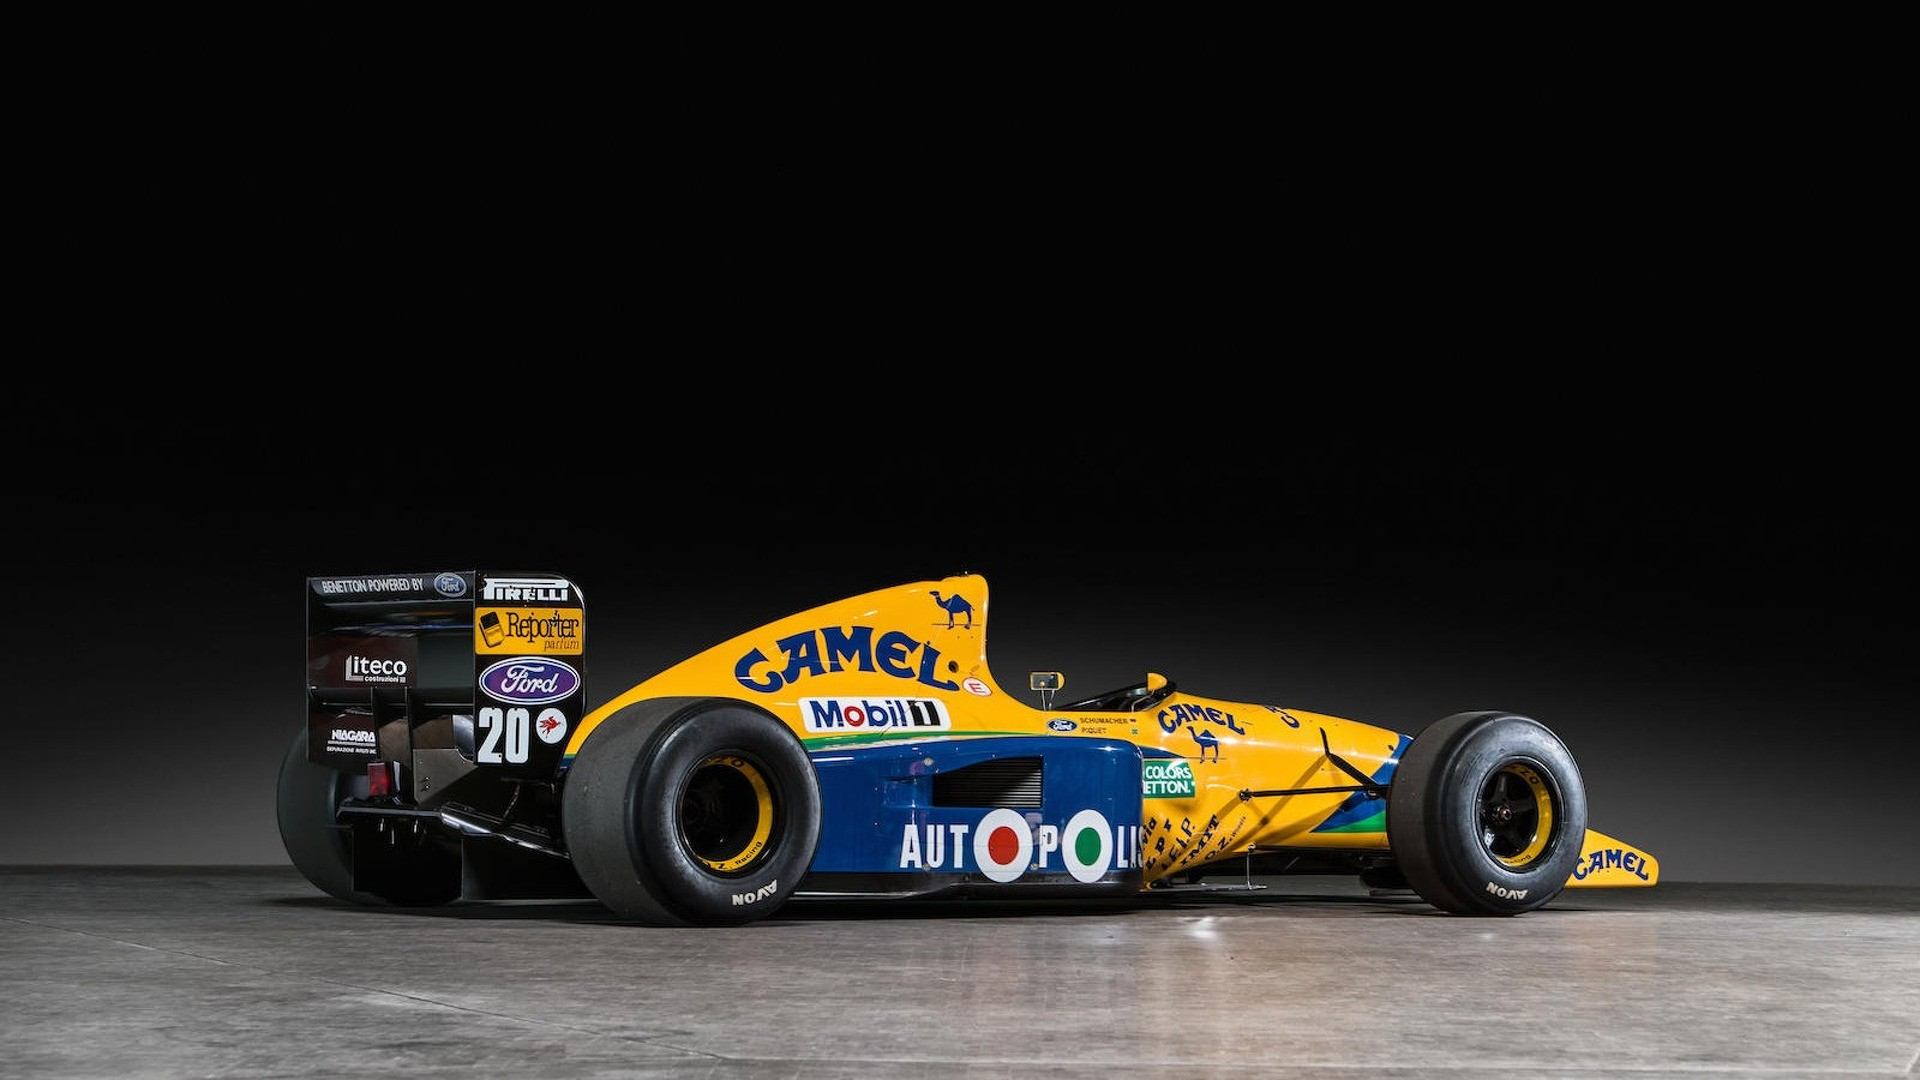 1991 Benetton Formula 1 Car Heading To Auction Autoevolution